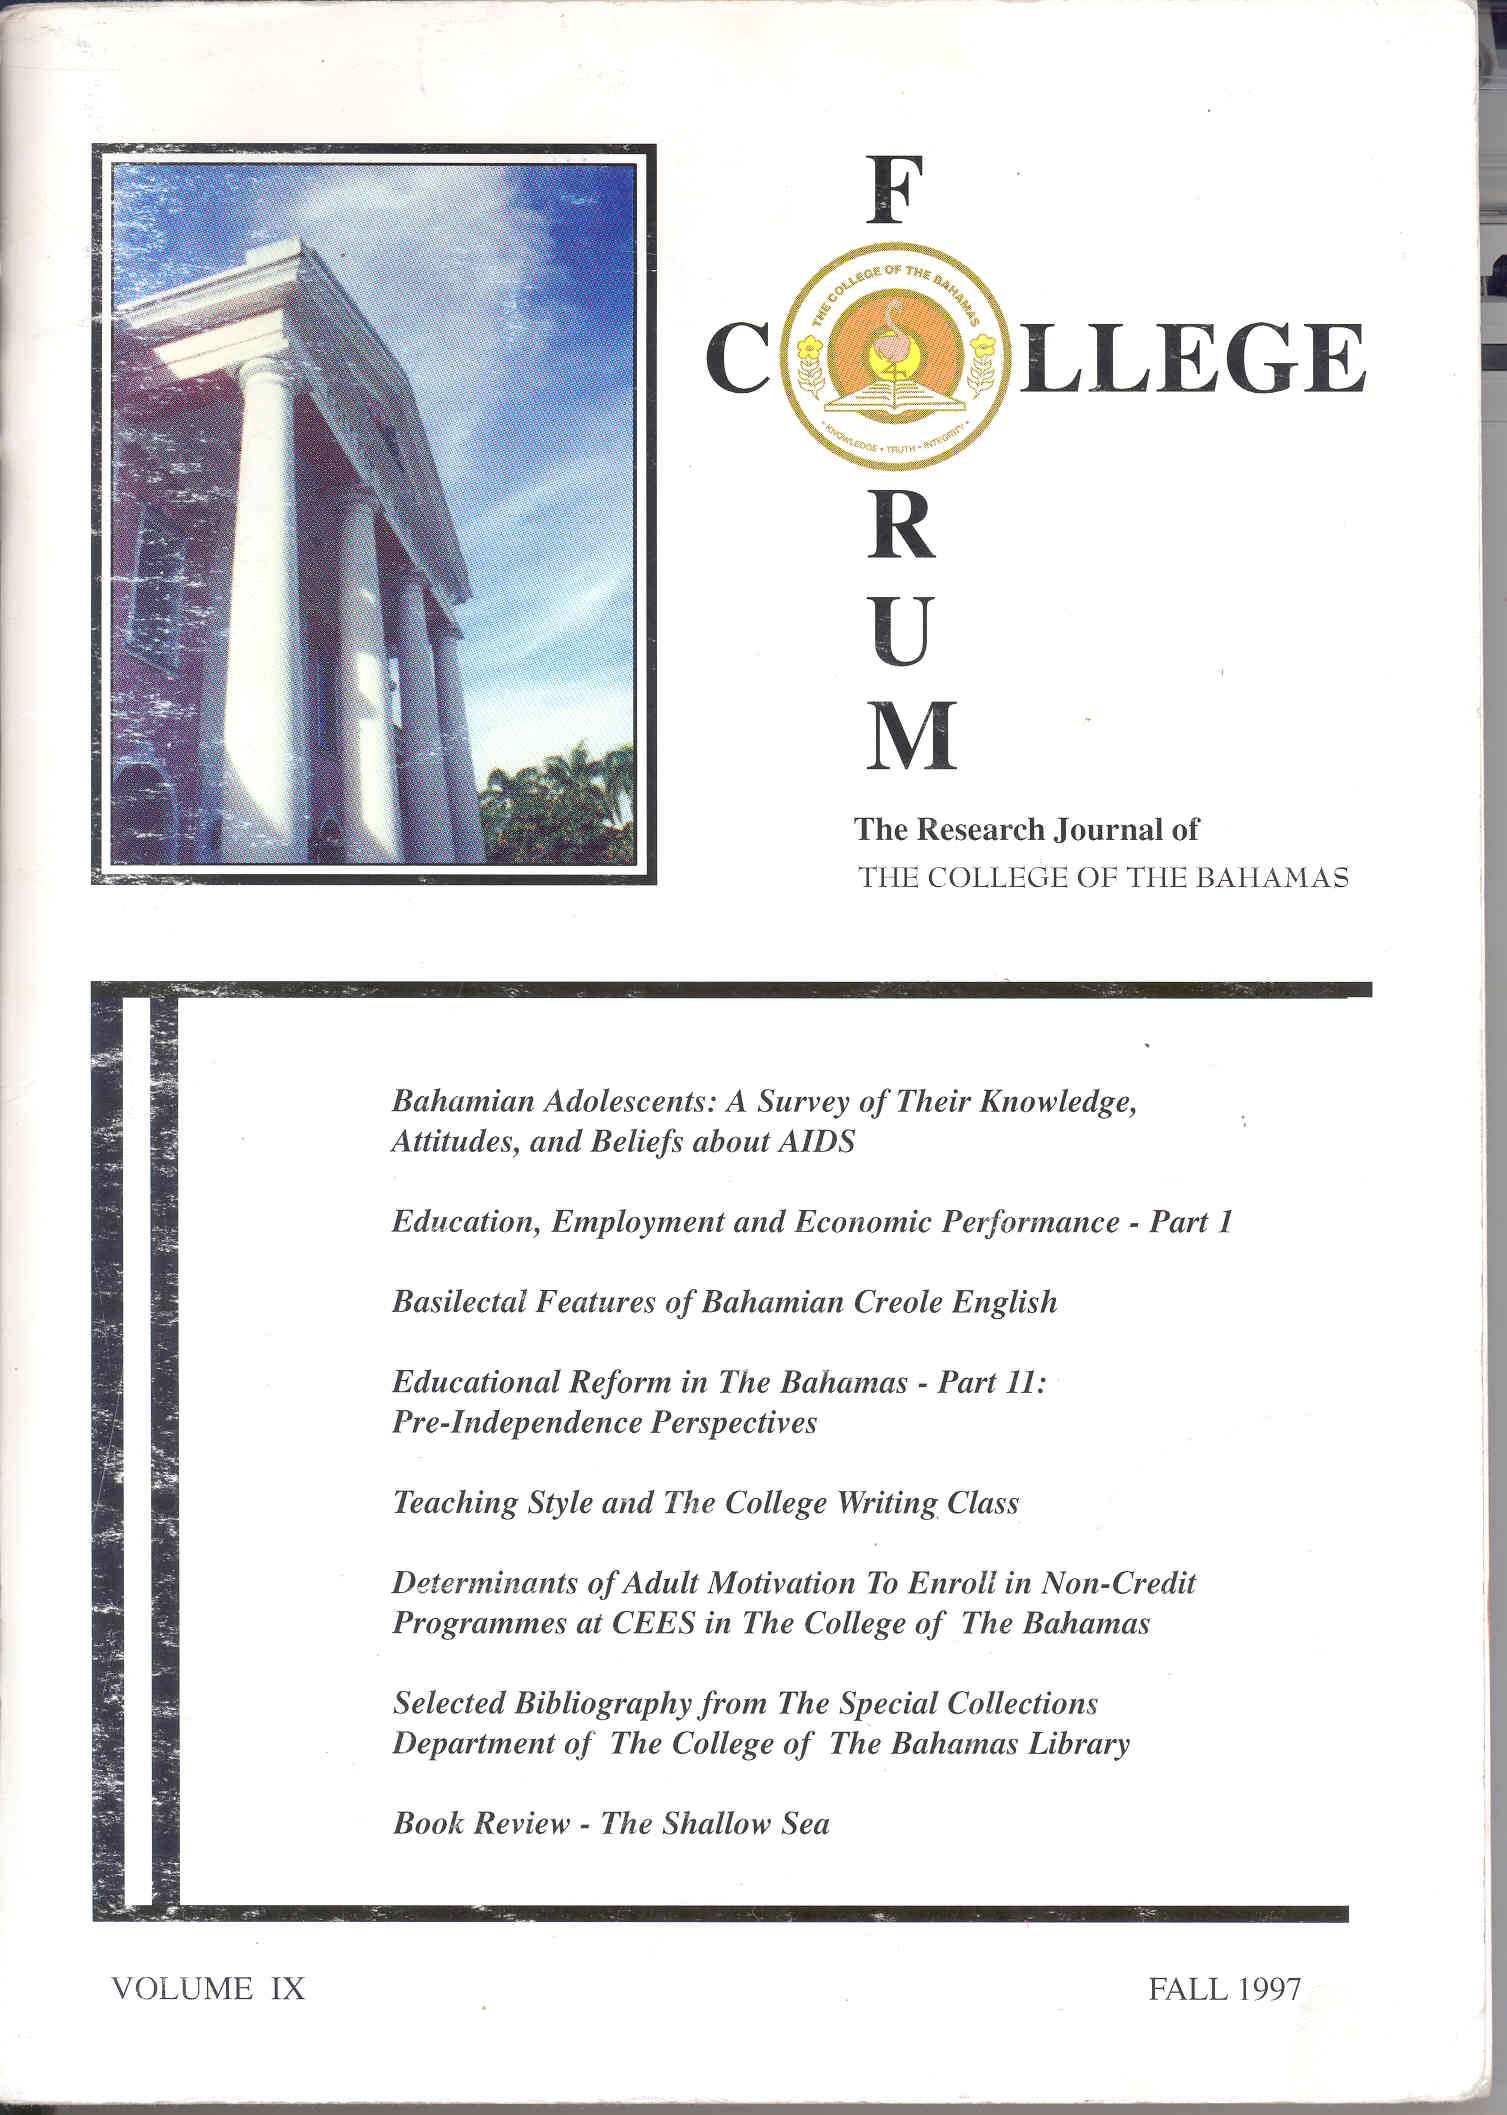 College Forum: The Research Journal of The College of The Bahamas